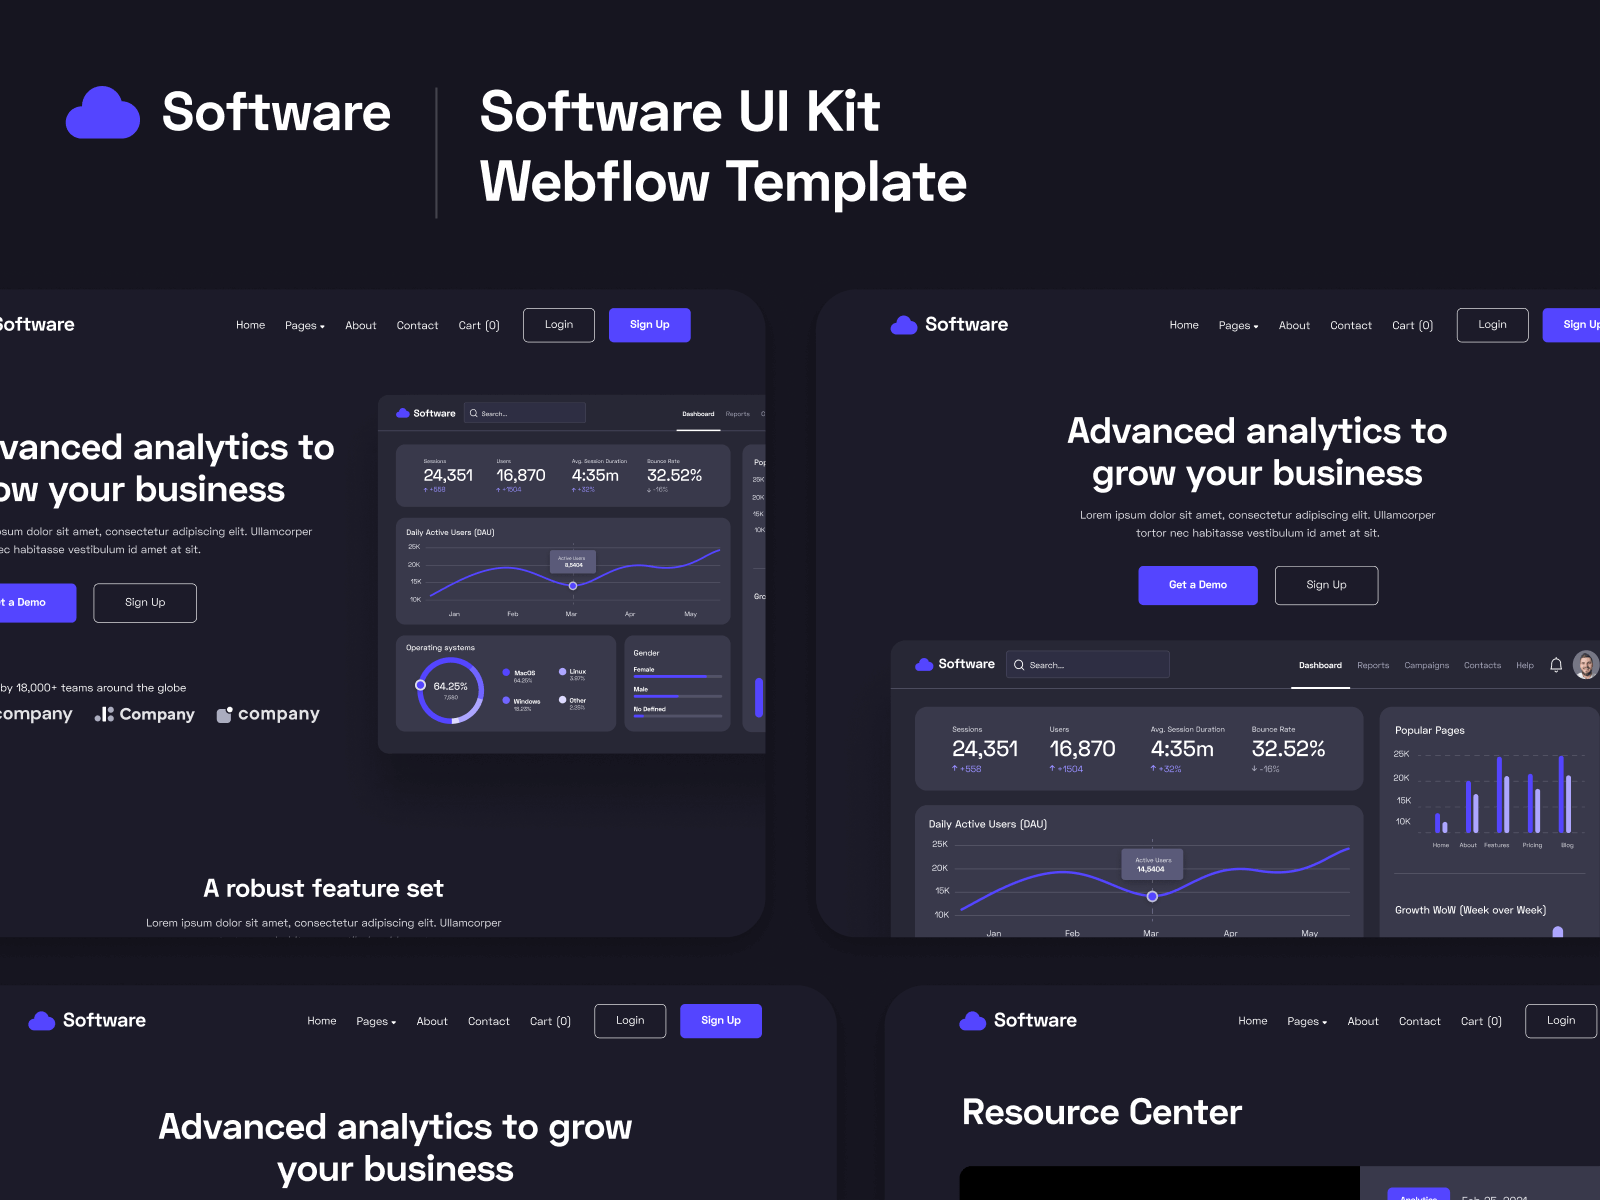 Software SaaS Webflow Template & UI Kit